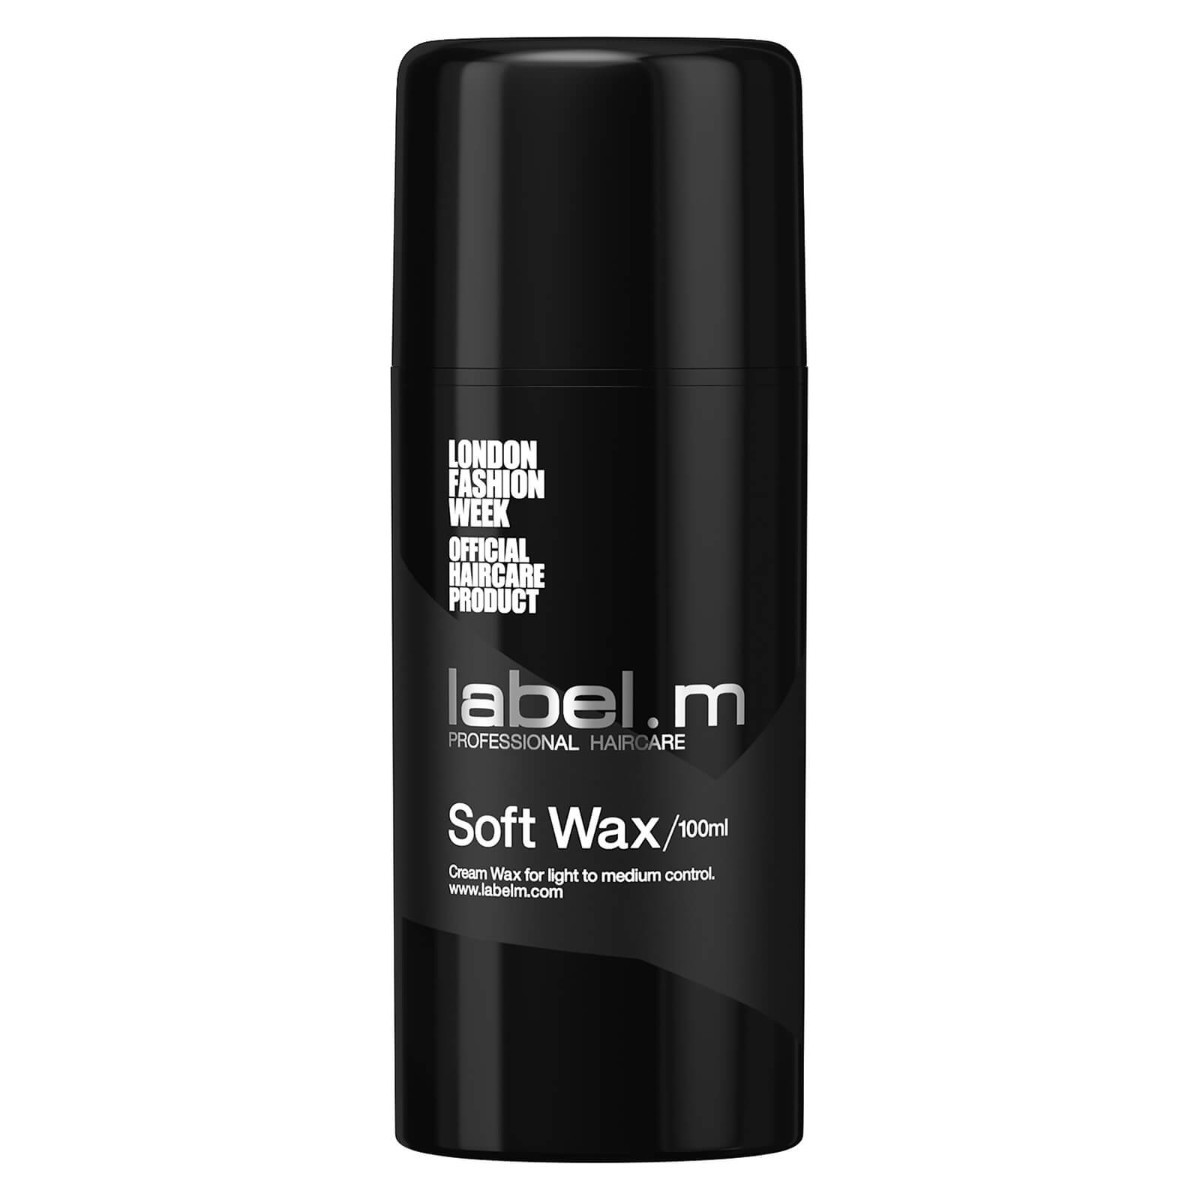 Label.m Soft Wax 100ml